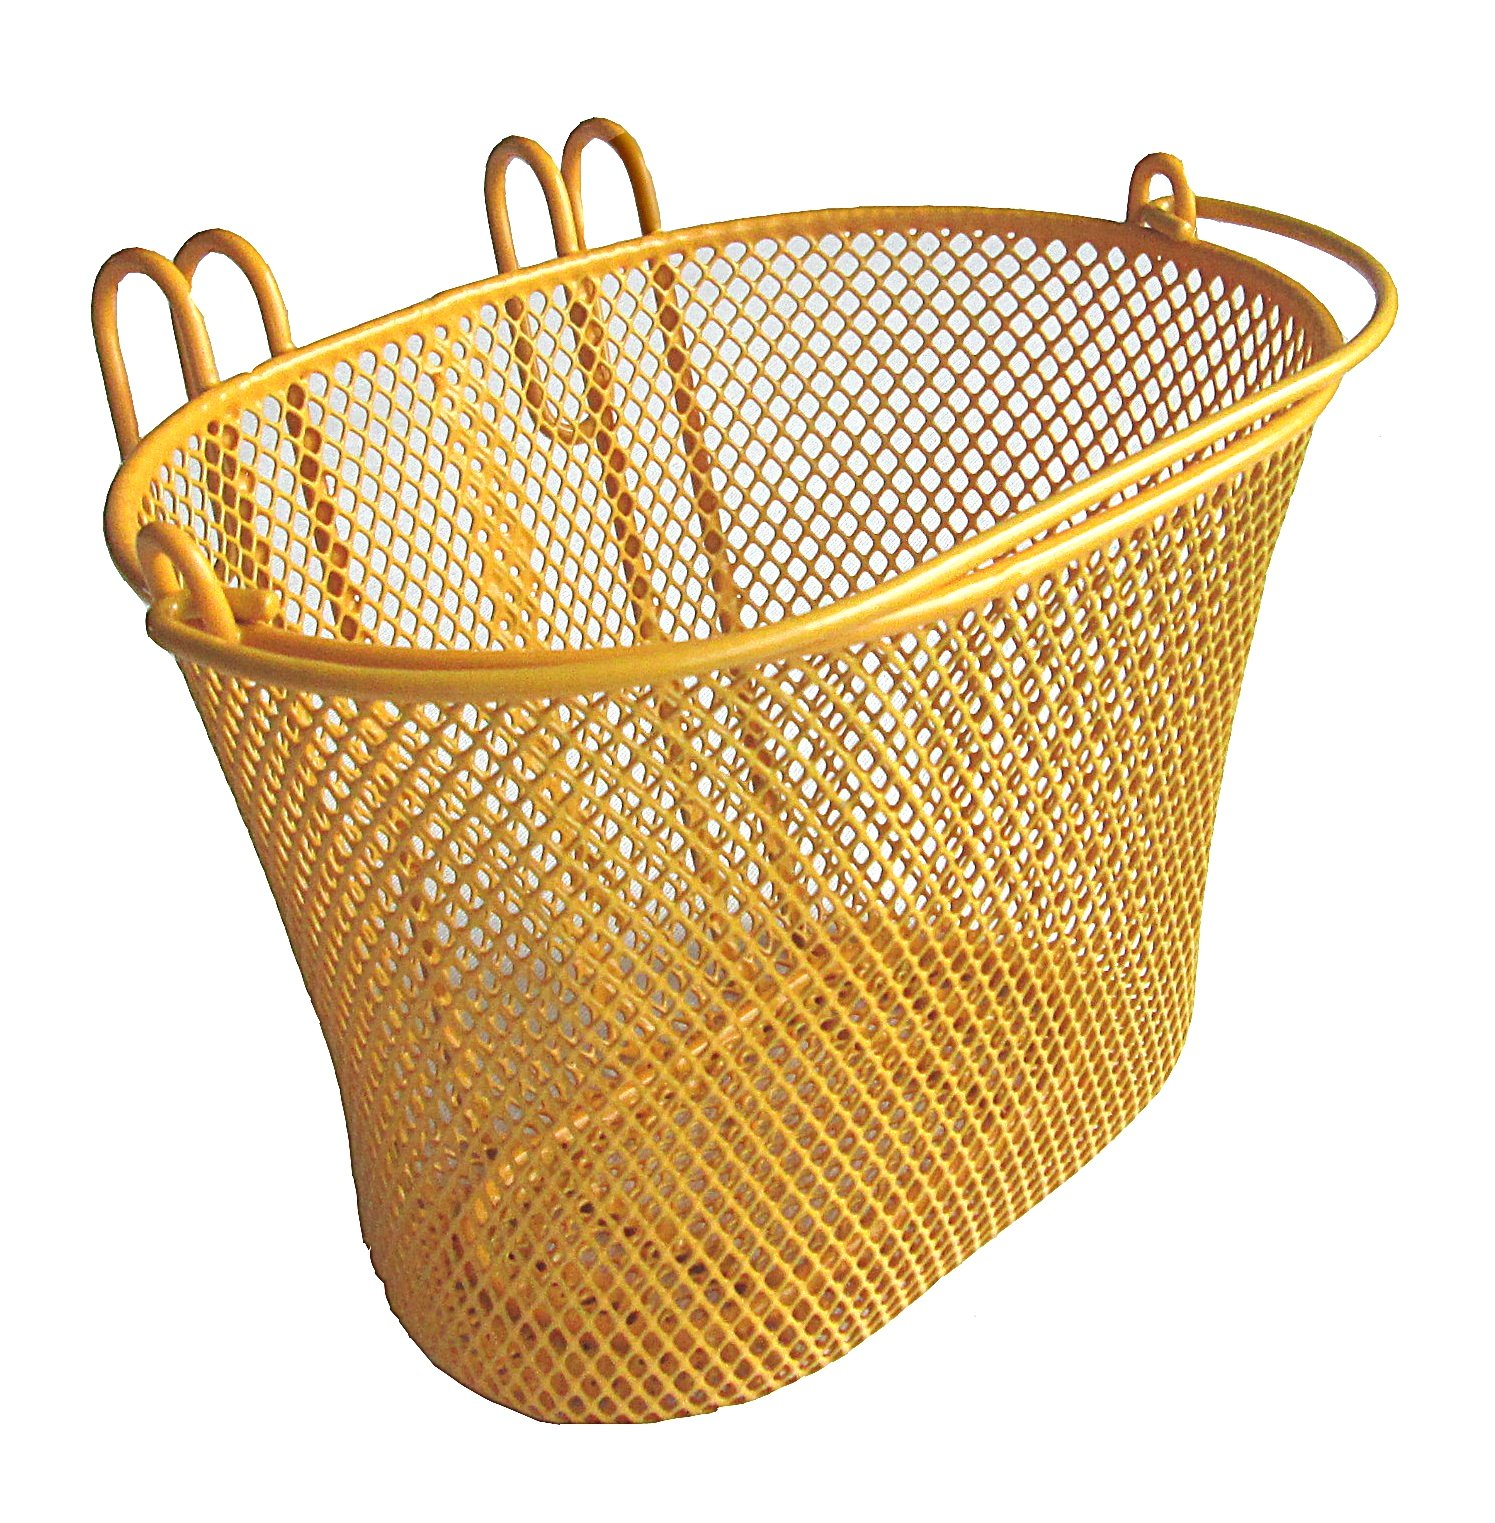 Biria CITY Hook Yellow Child's Bicycle Basket